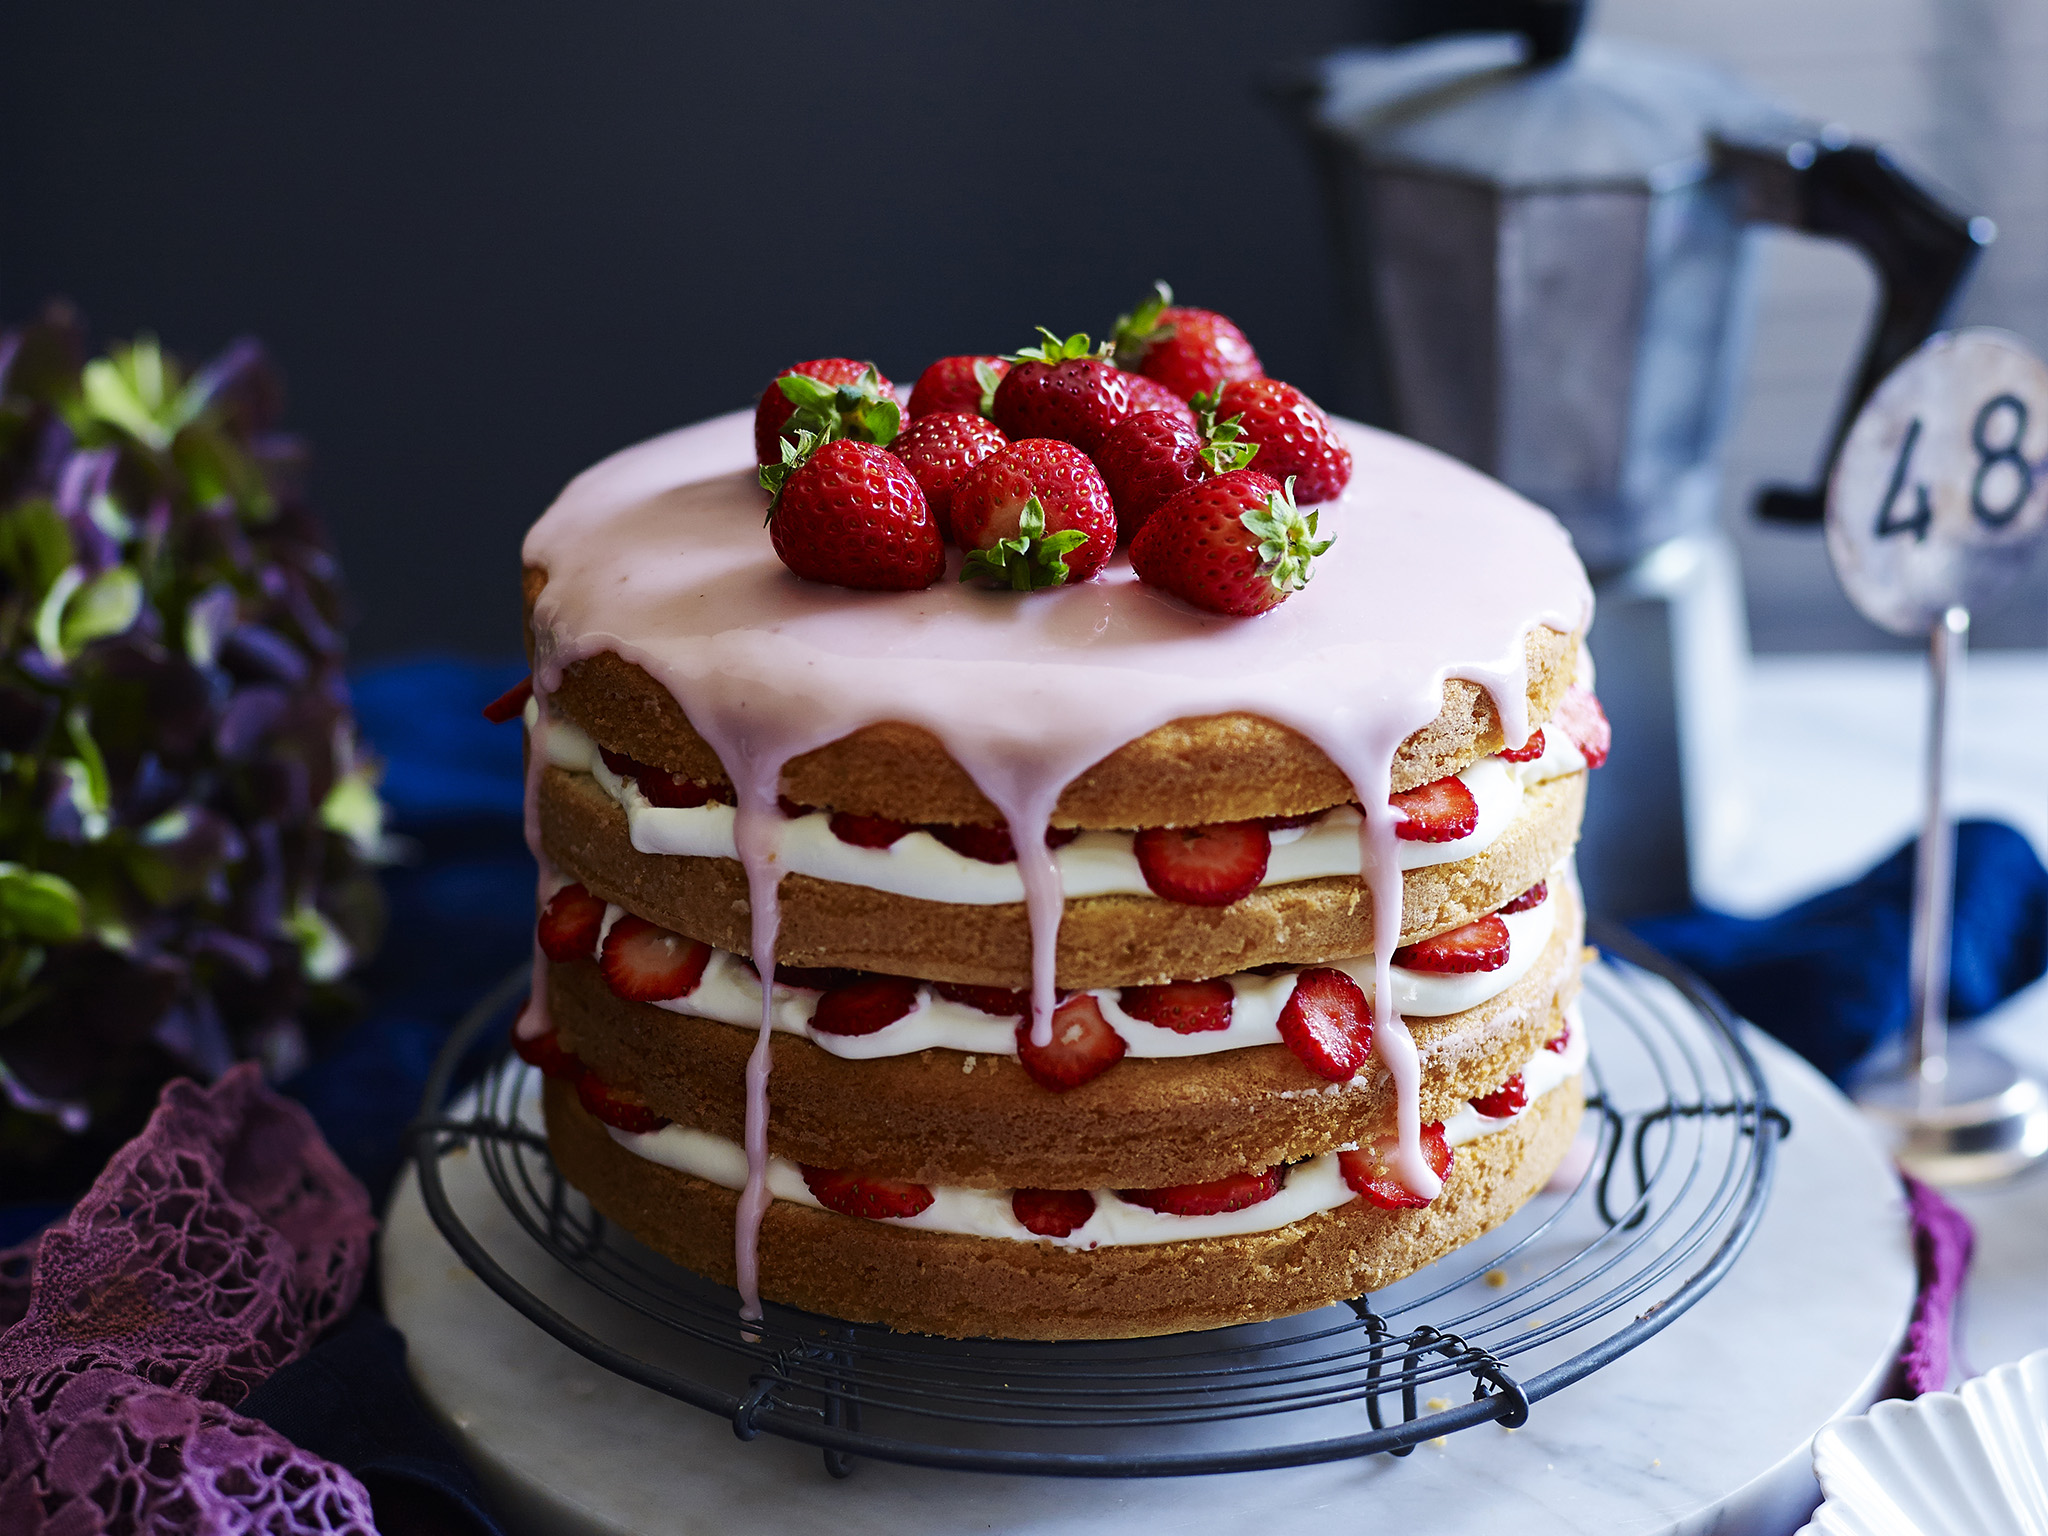 ... _C1470212-Gluten-free-strawberries-and-cream-layer-cake-046.jpg